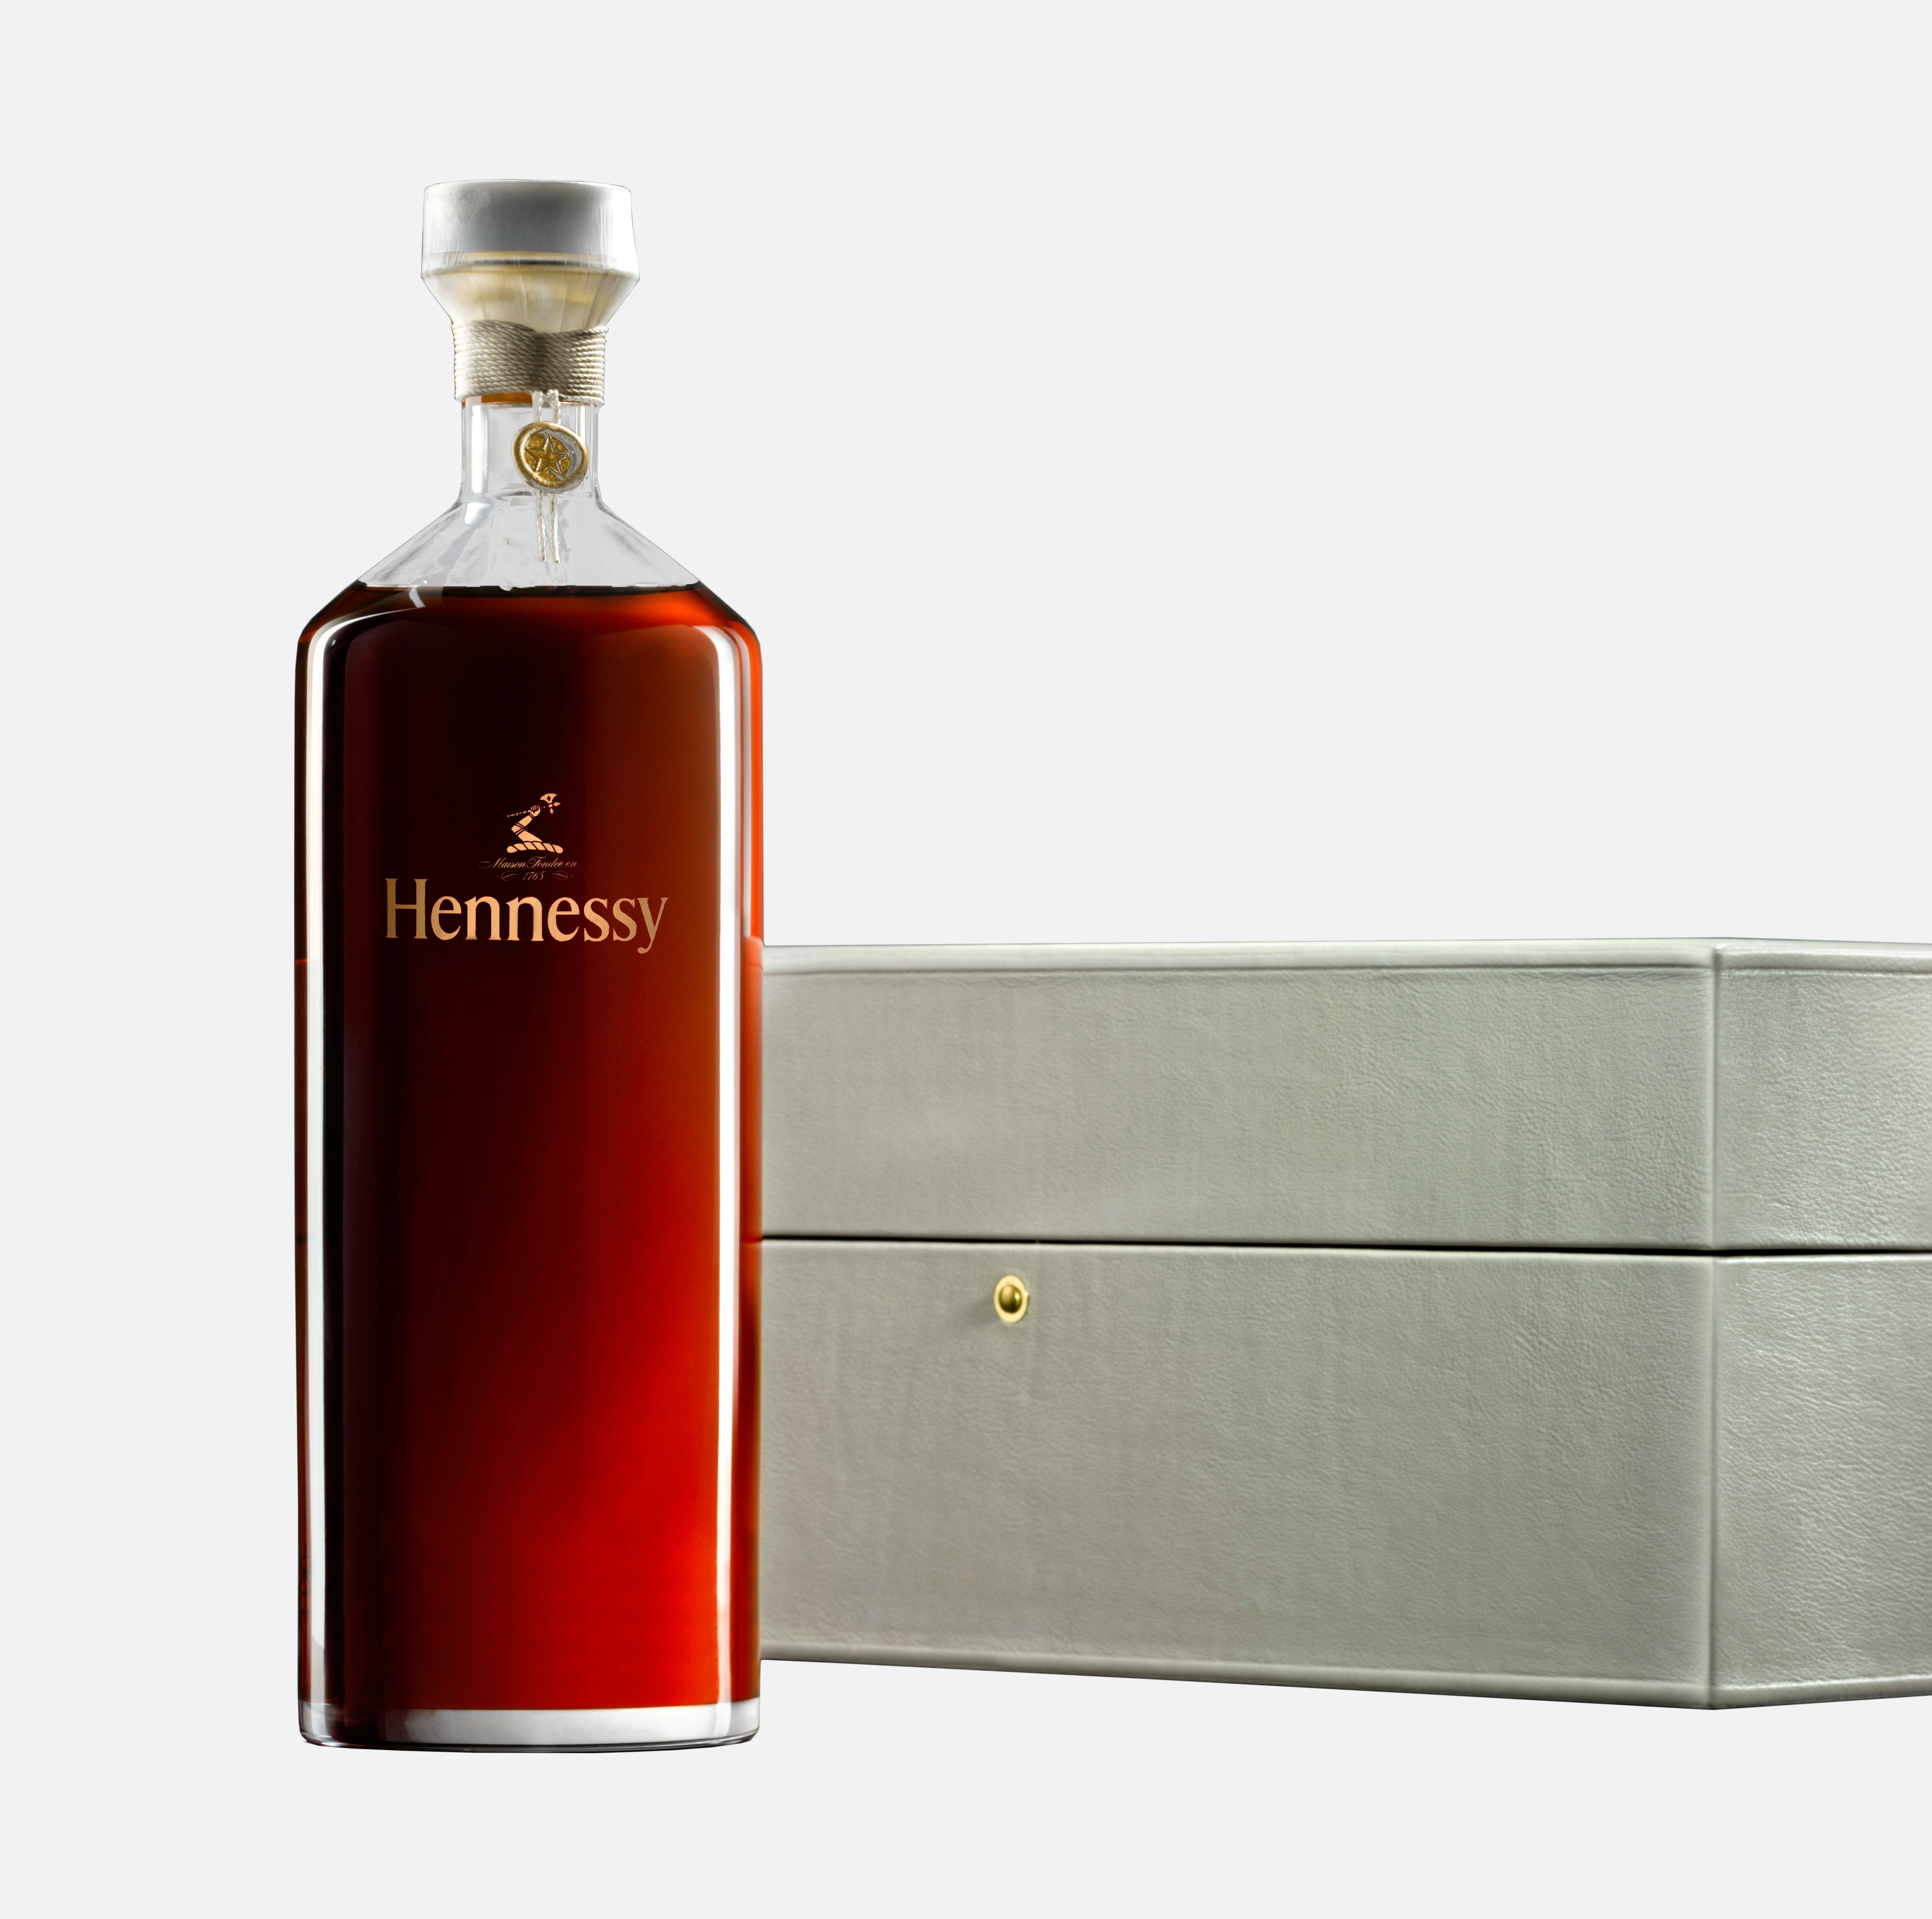 Hennessy Edition Particuliere Cognac